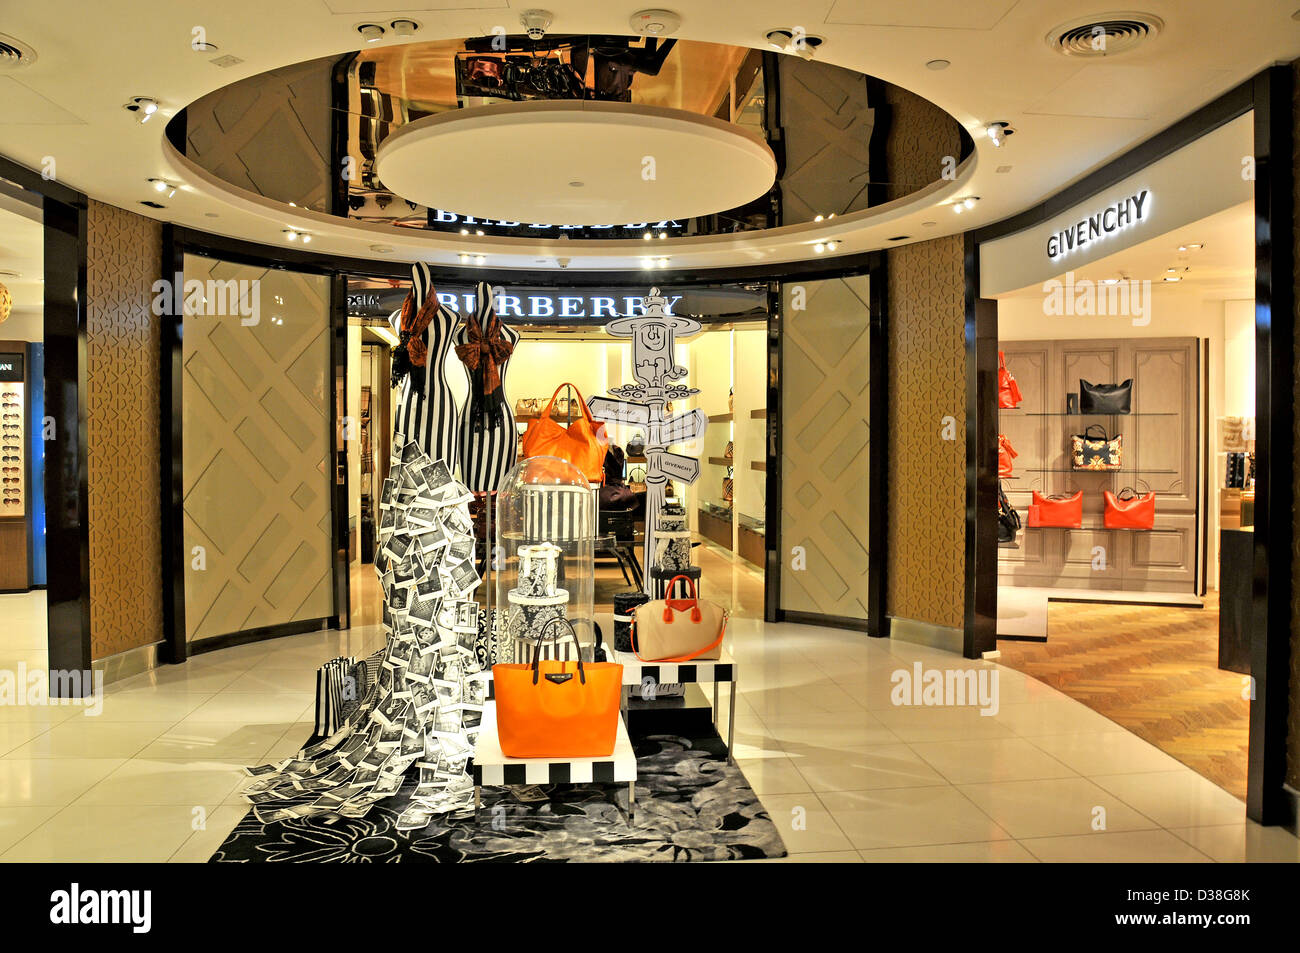 Burberry and Givenchy boutiques duty free shop Abu Dhabi international airport - Stock Image